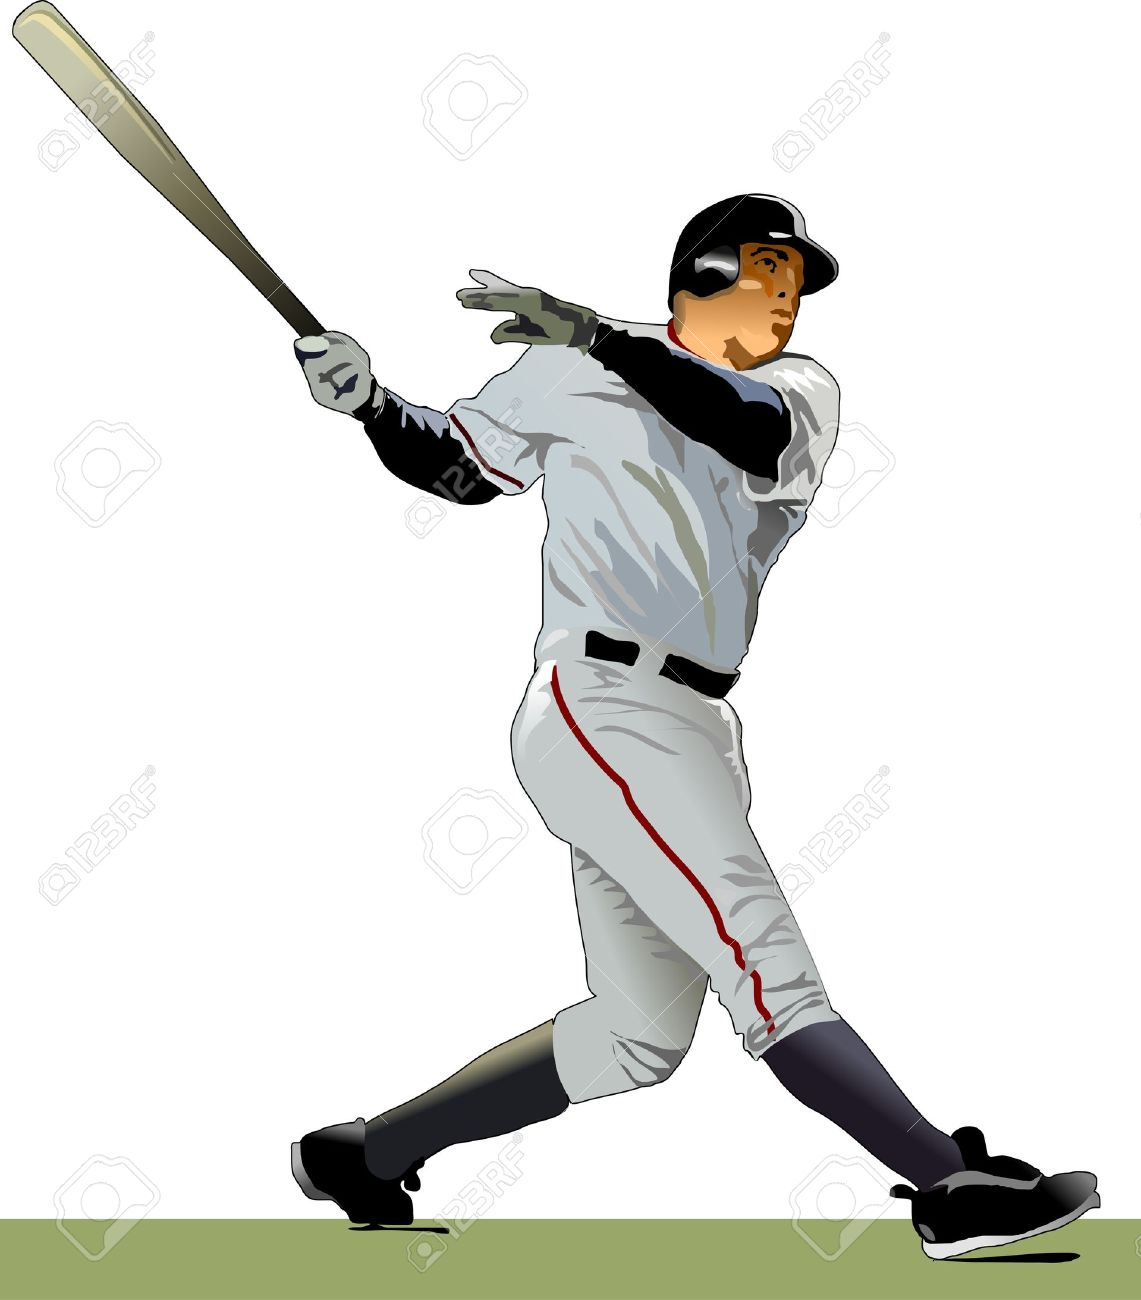 hight resolution of baseball batter illustration stock vector 9884991